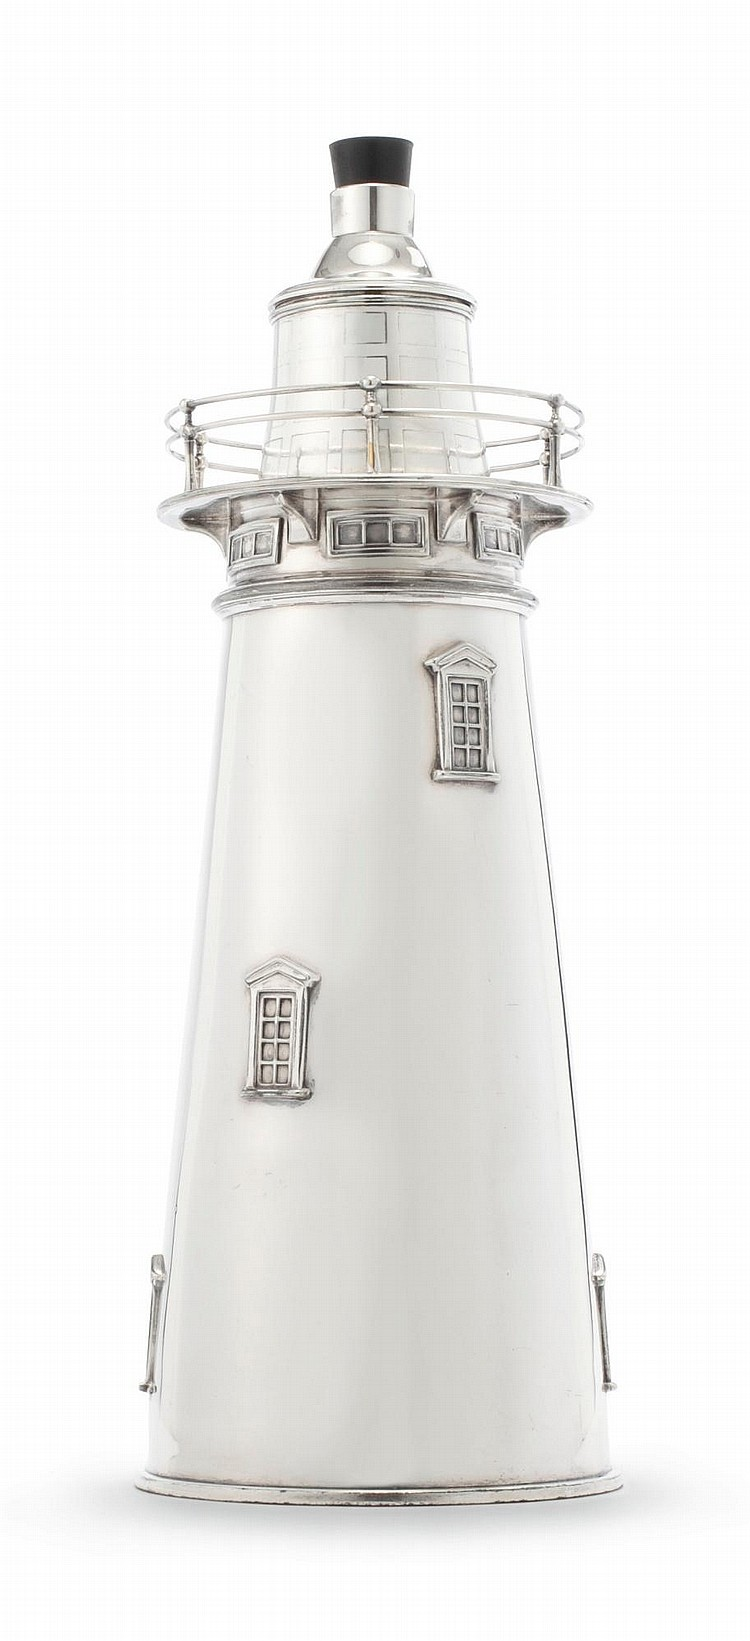 AN AMERICAN SILVER-PLATED LIGHTHOUSE COCKTAIL SHAKER, INTERNATIONAL SILVER CO., MERIDEN, CT, CIRCA 1930 |